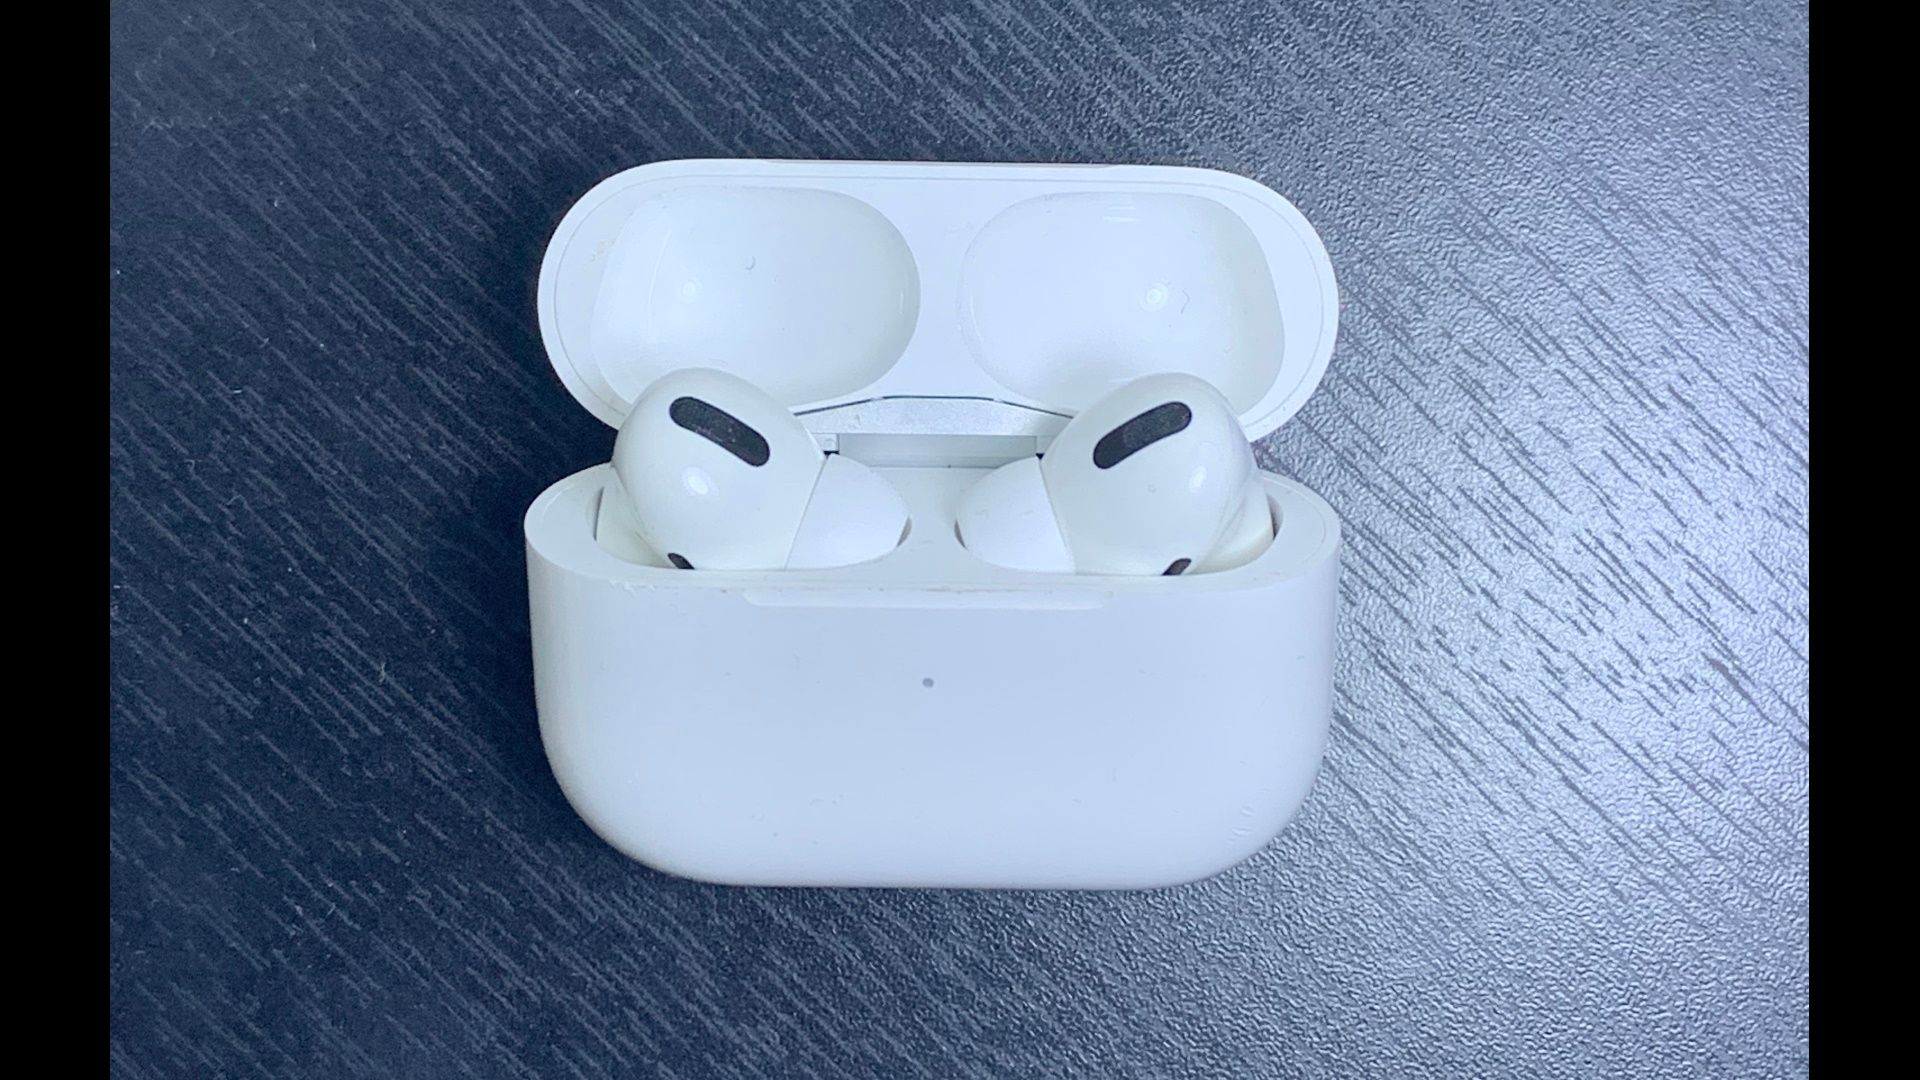 Two Weeks with AirPods Pro